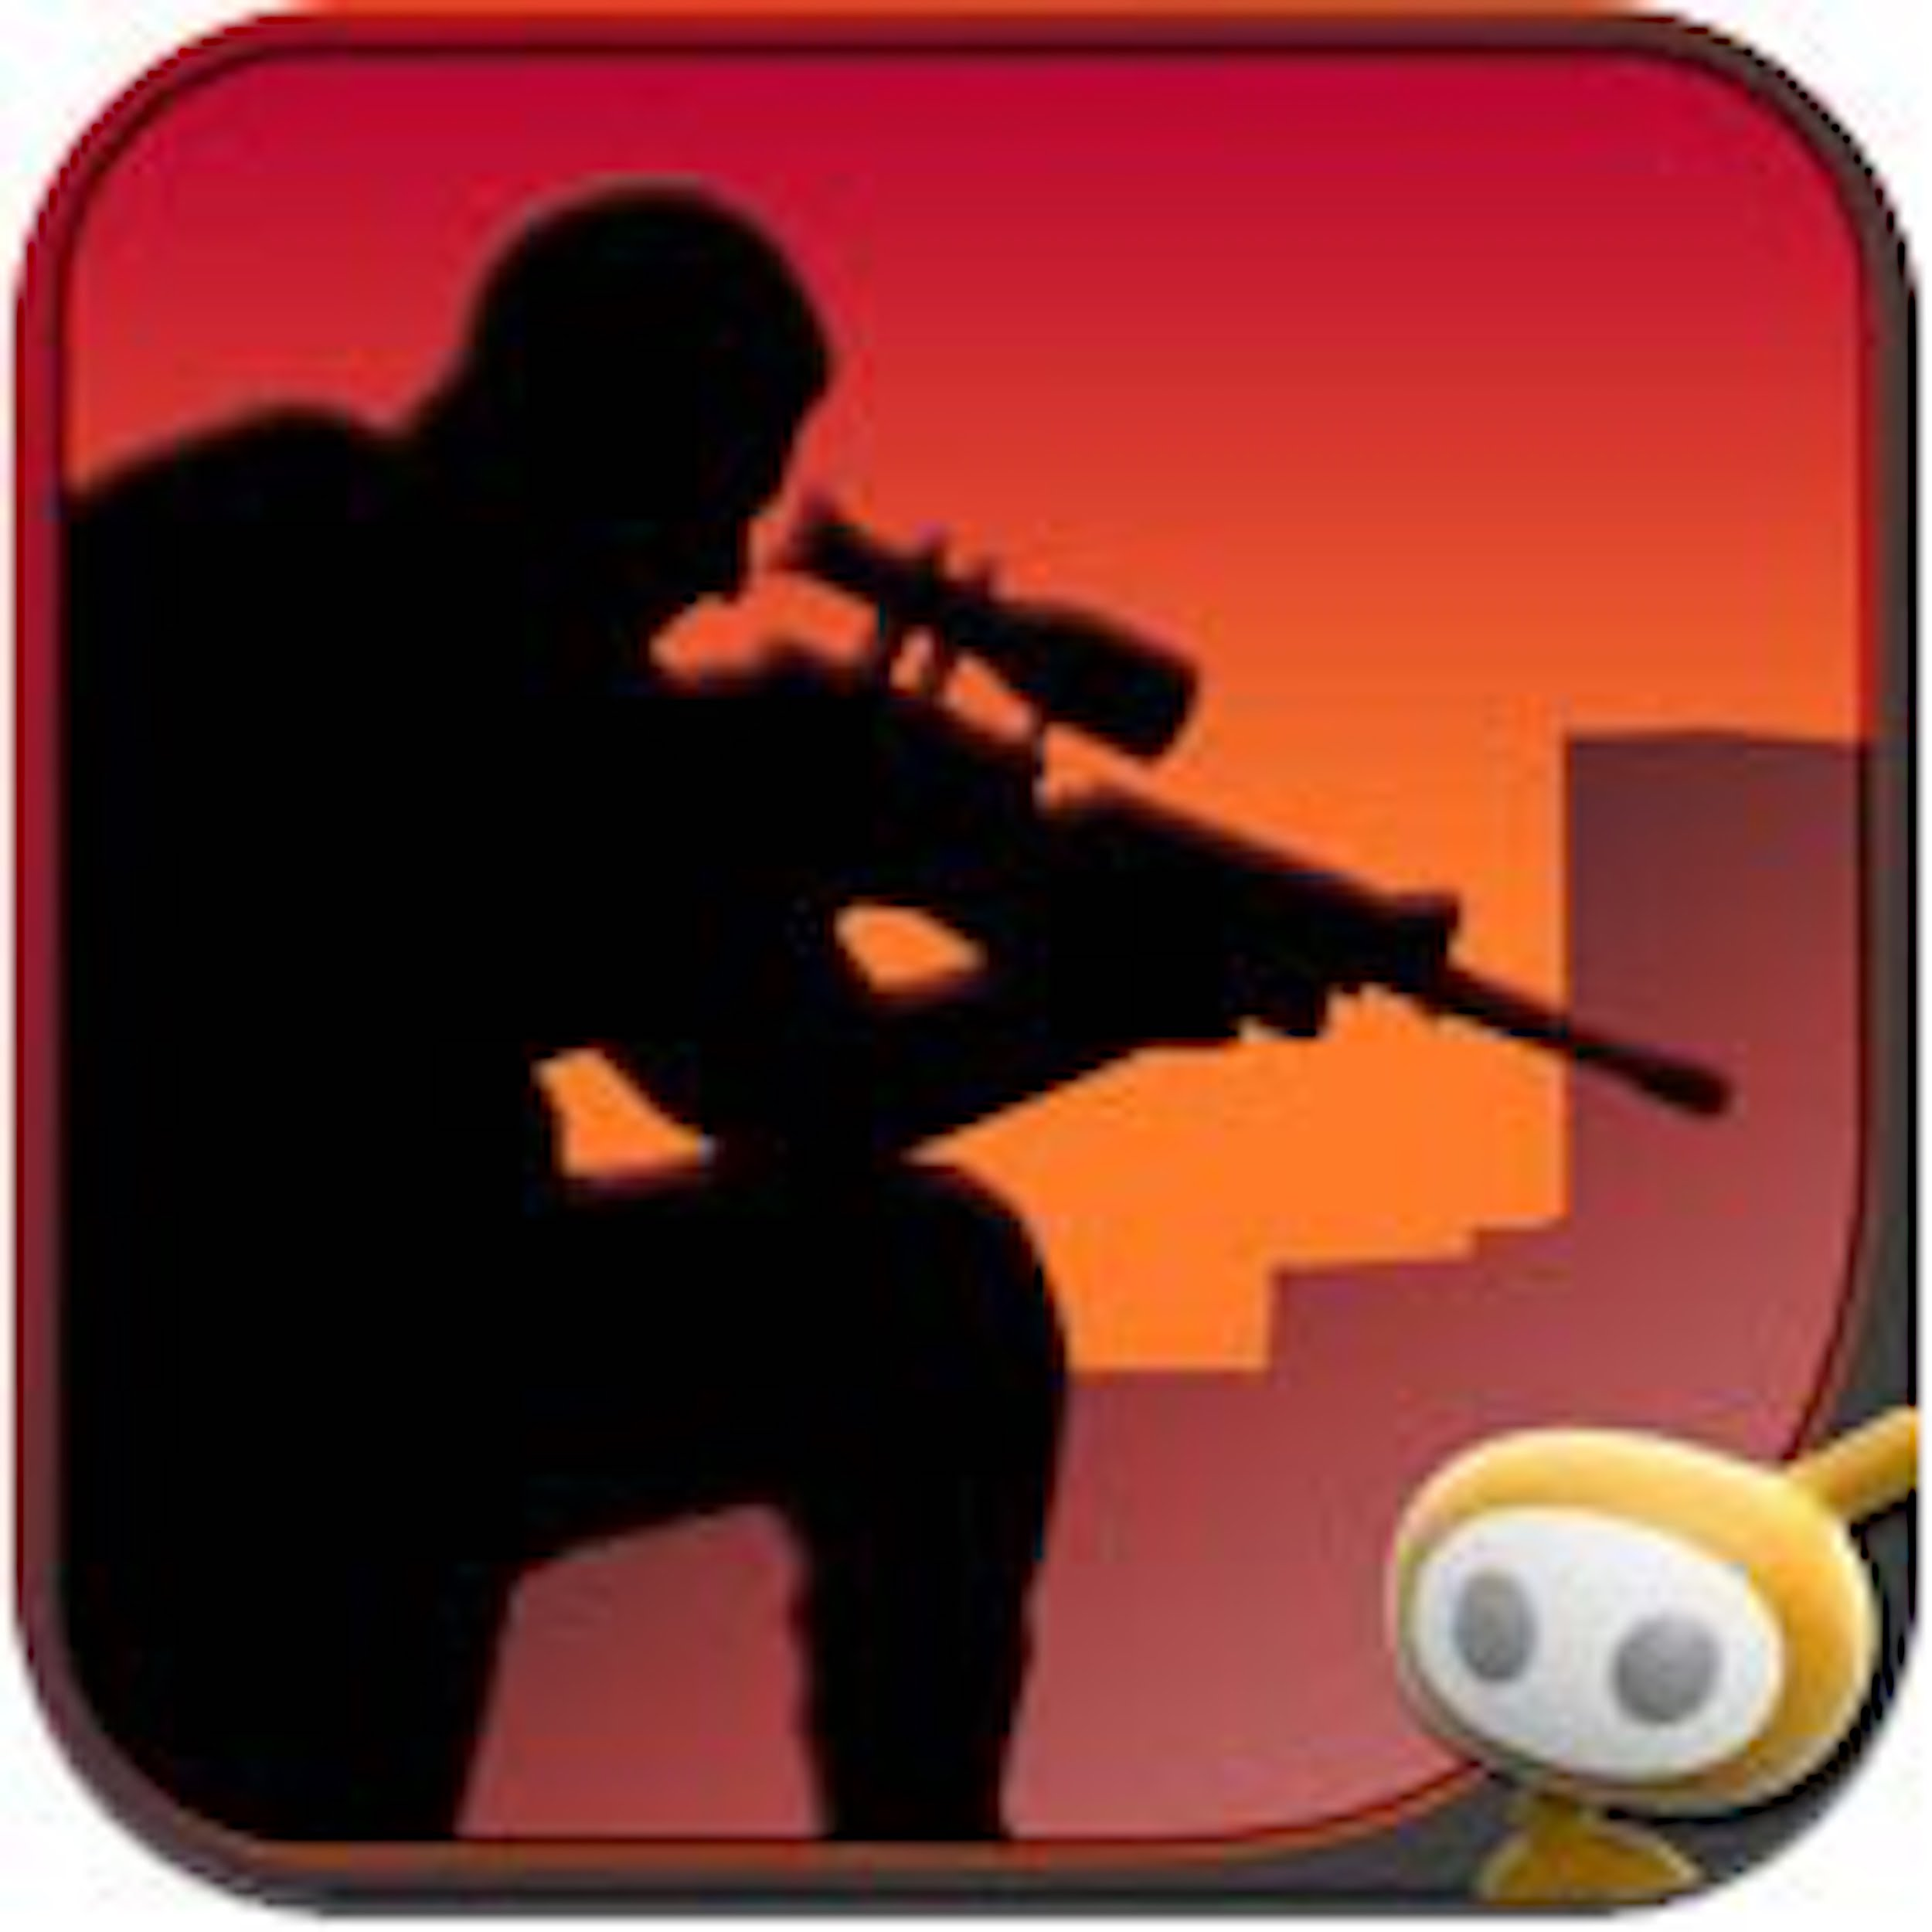 File:Contract Killer iTunes Game App Icon.jpg